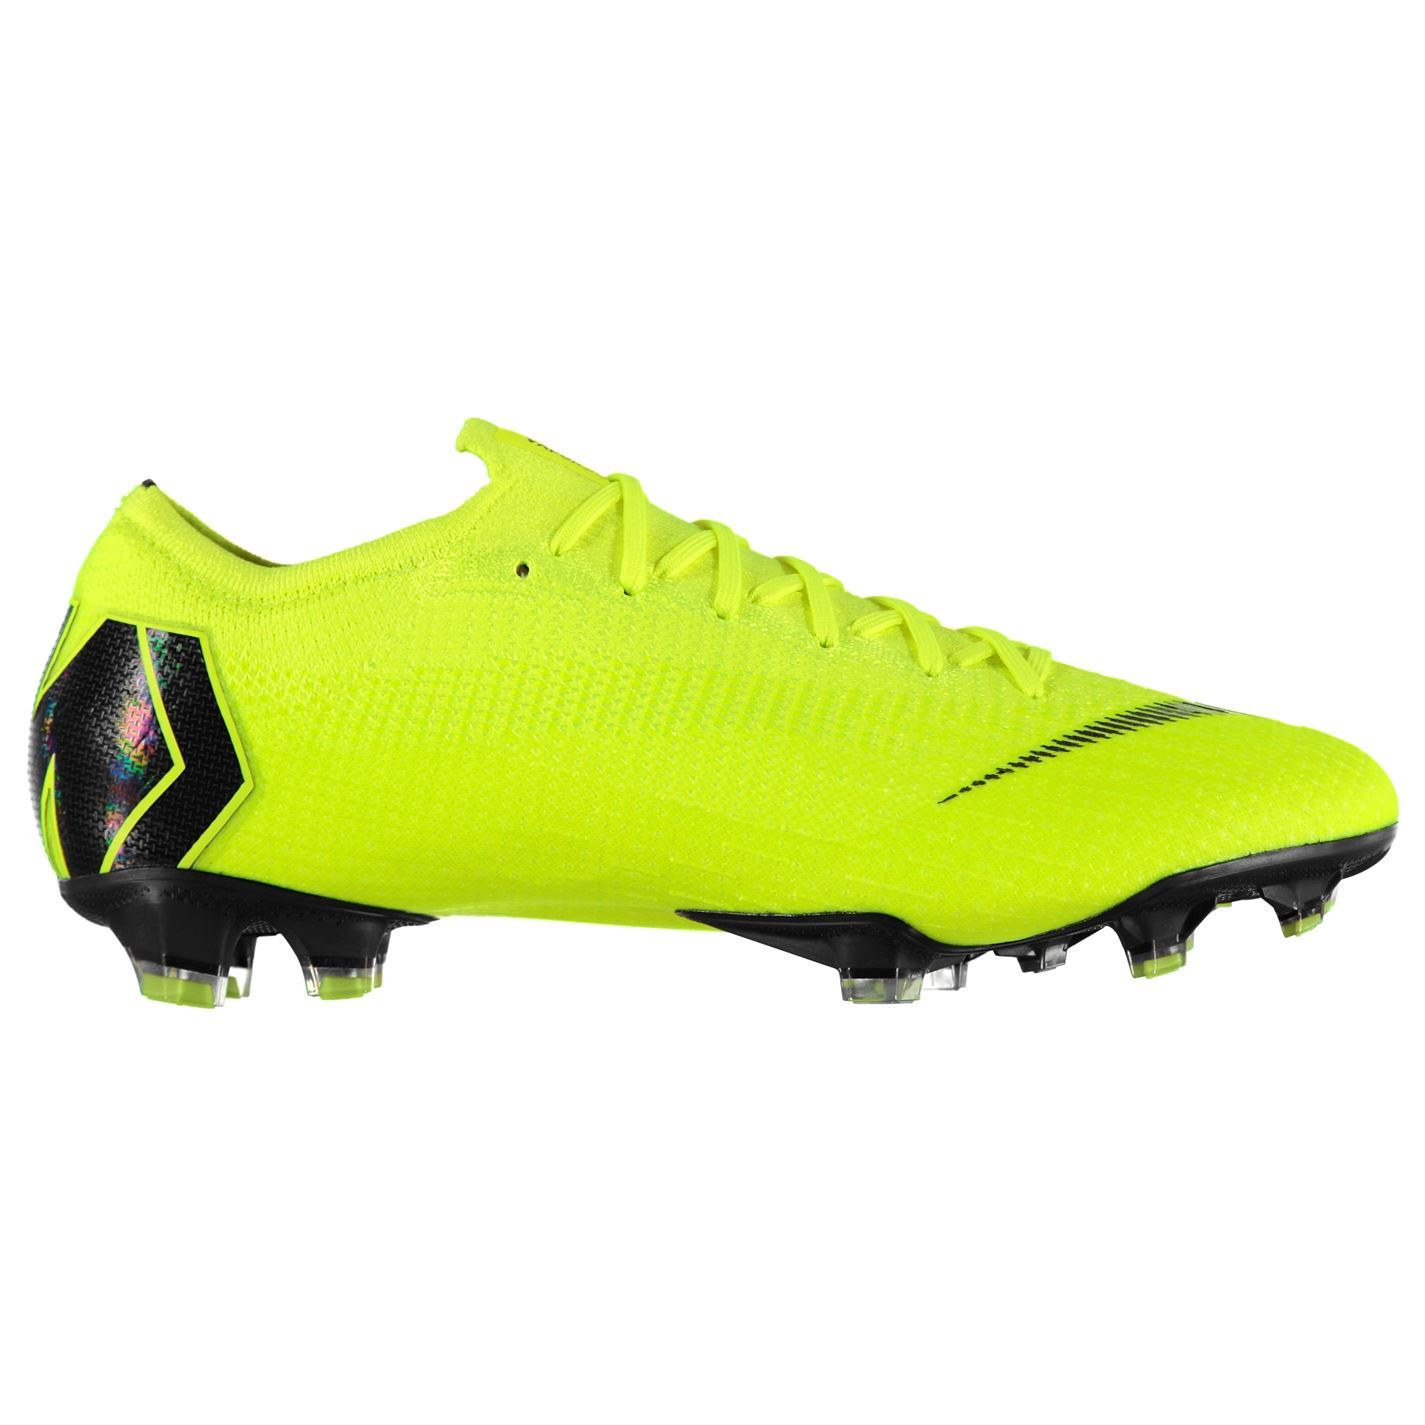 0c120acb9e09 ... Nike Mercurial Vapor Elite FG Firm Ground Football Boots Mens Soccer  Shoe Cleats